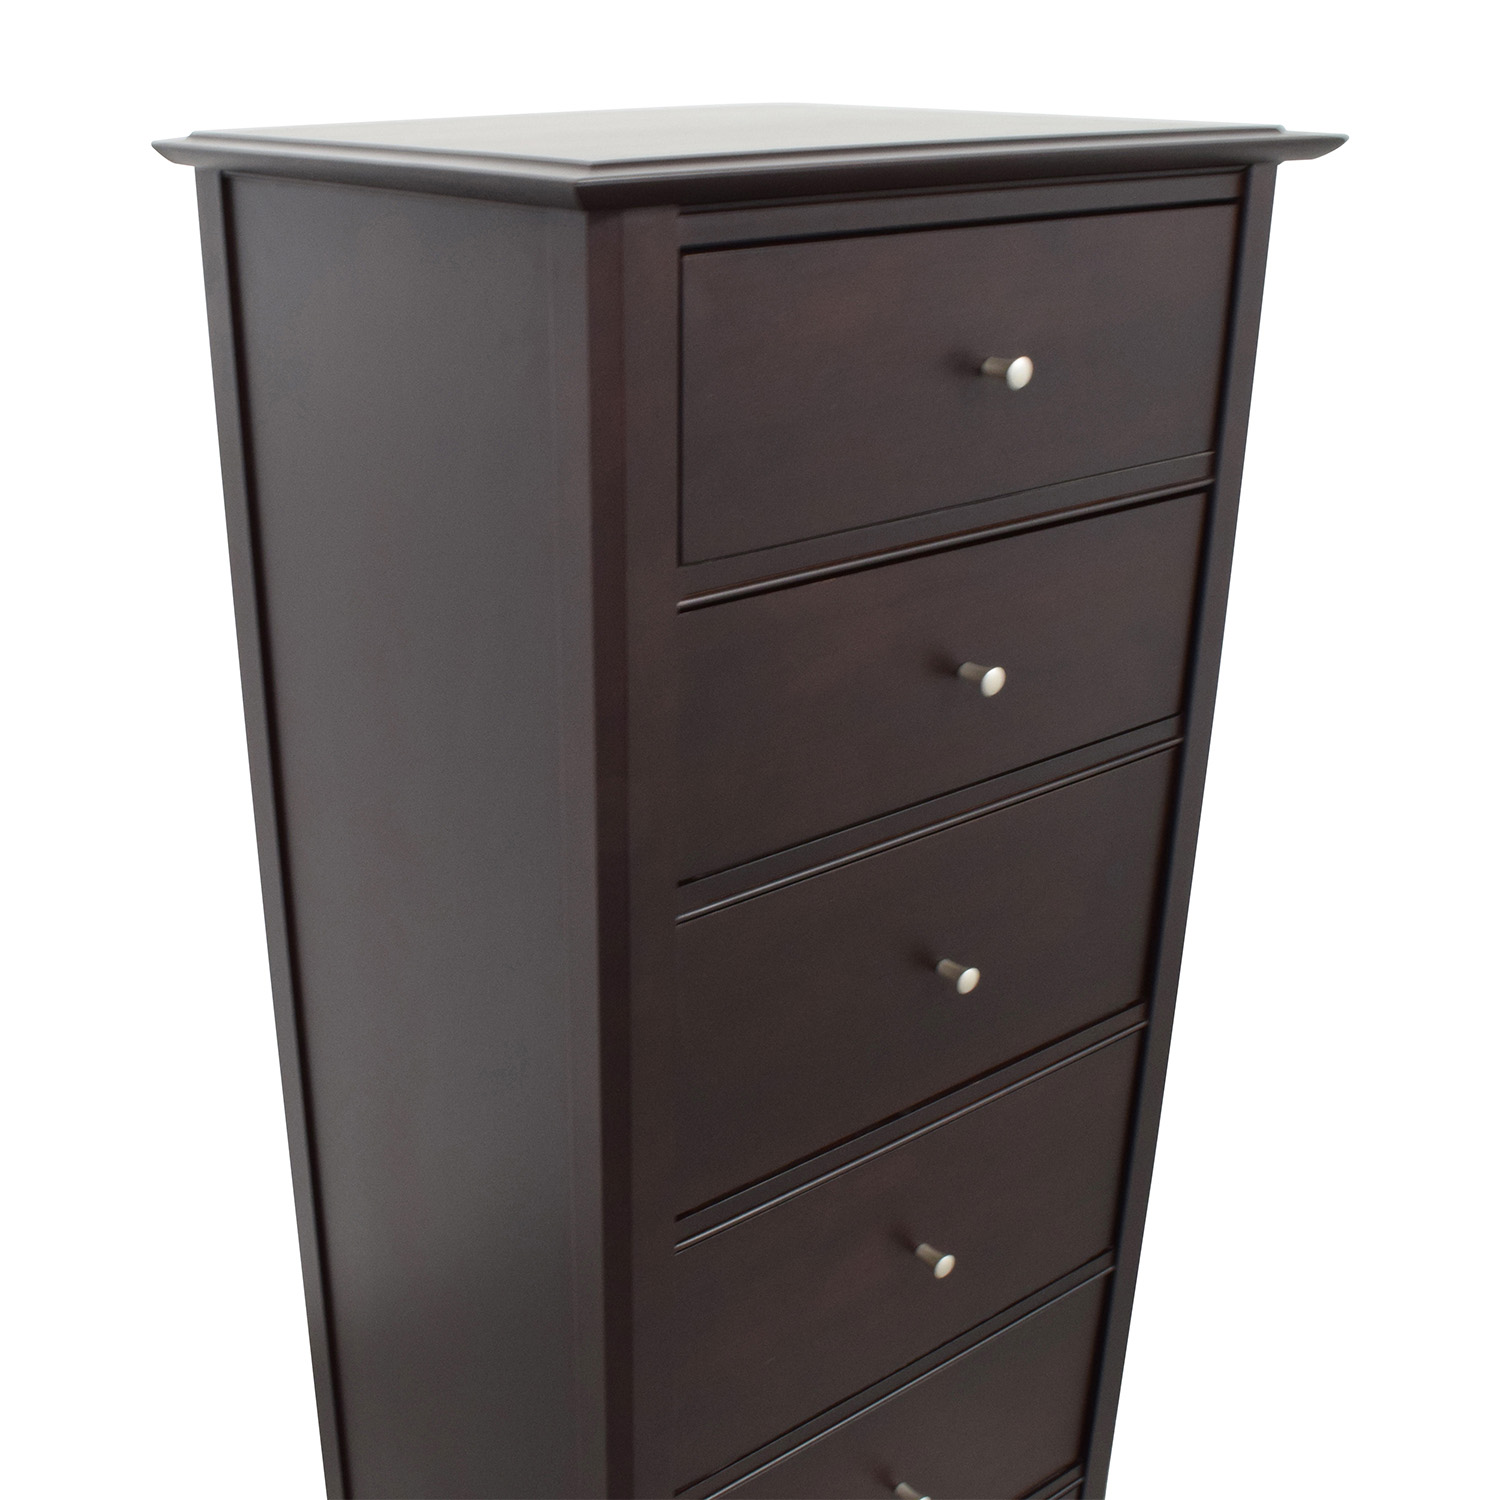 Crate & Barrel Crate & Barrel Six-Drawer Dresser in Dark Maple dimensions